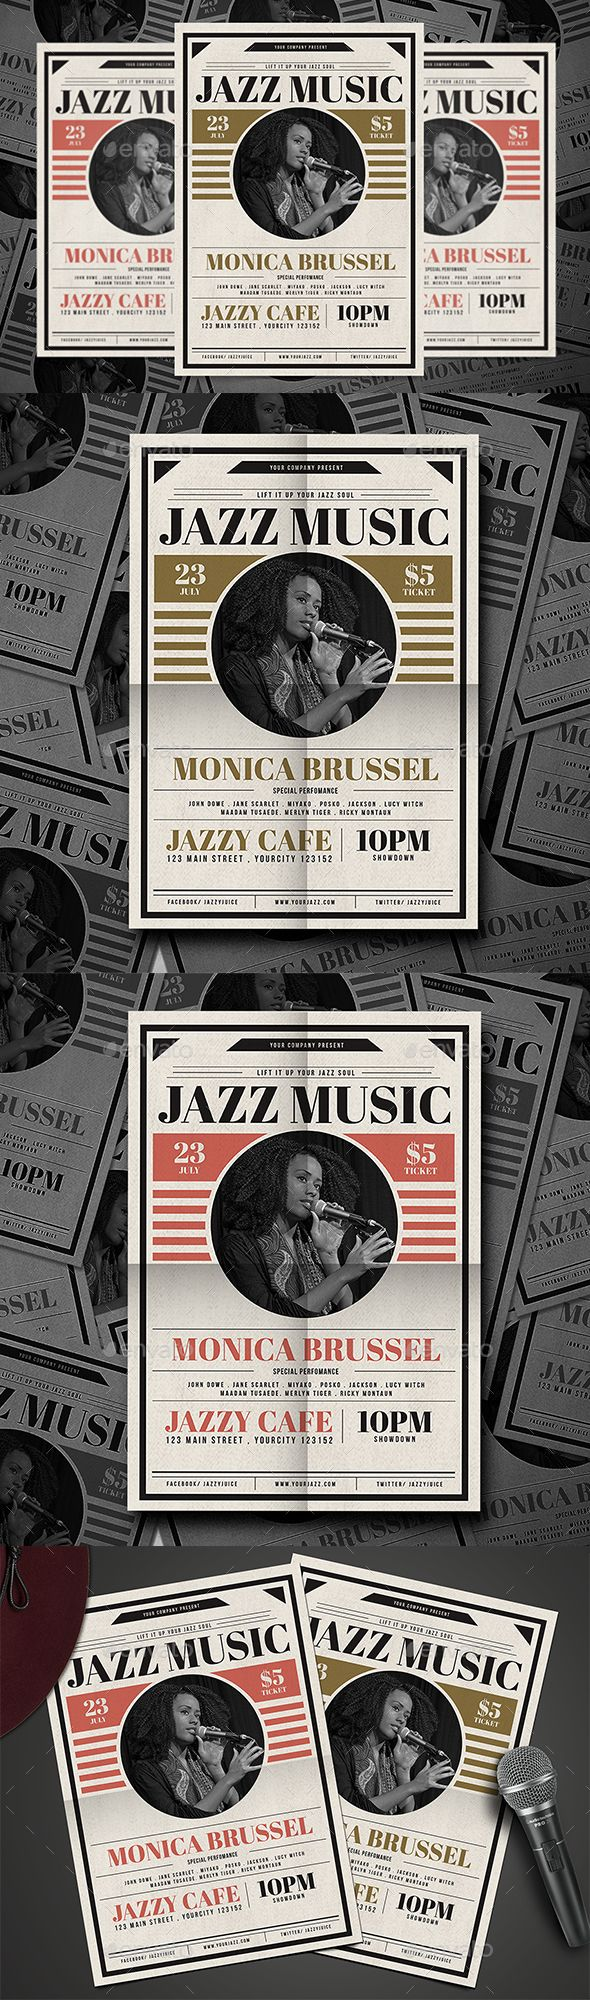 Classic Jazz Flyer Template PSD, AI Illustrator